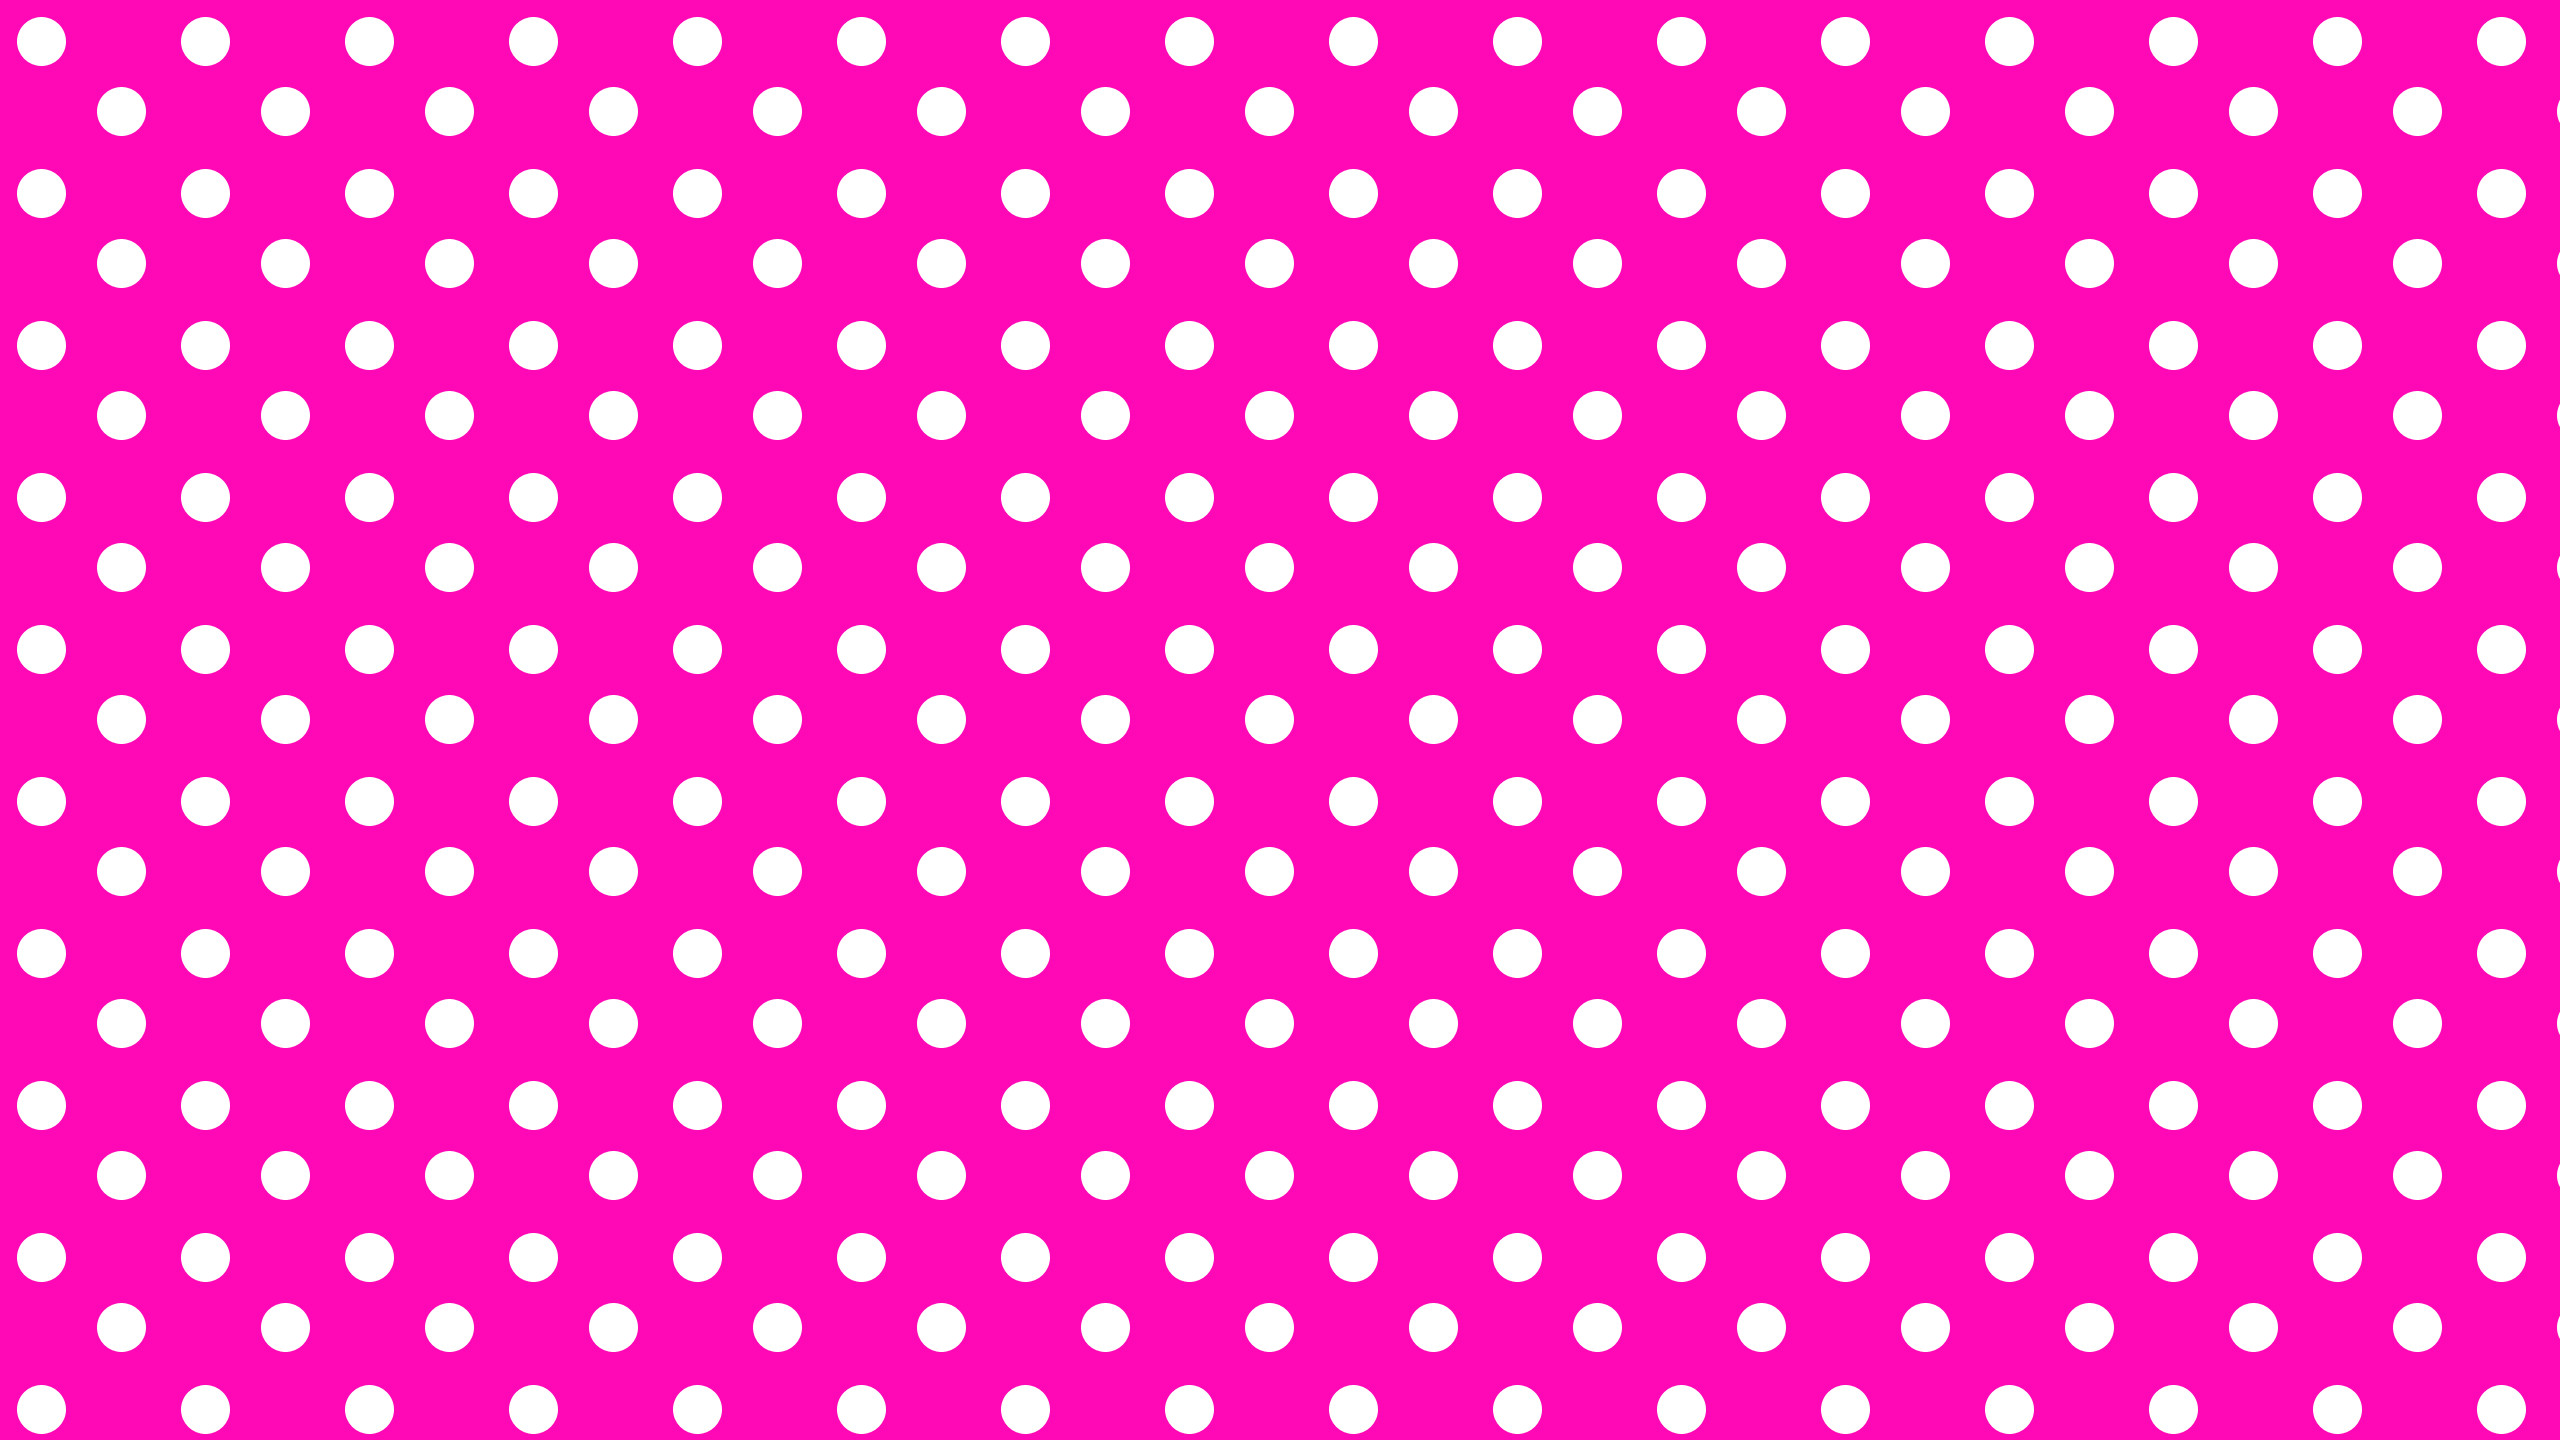 2560x1440 Pink Desktop Large Wallpaper Wallpapers